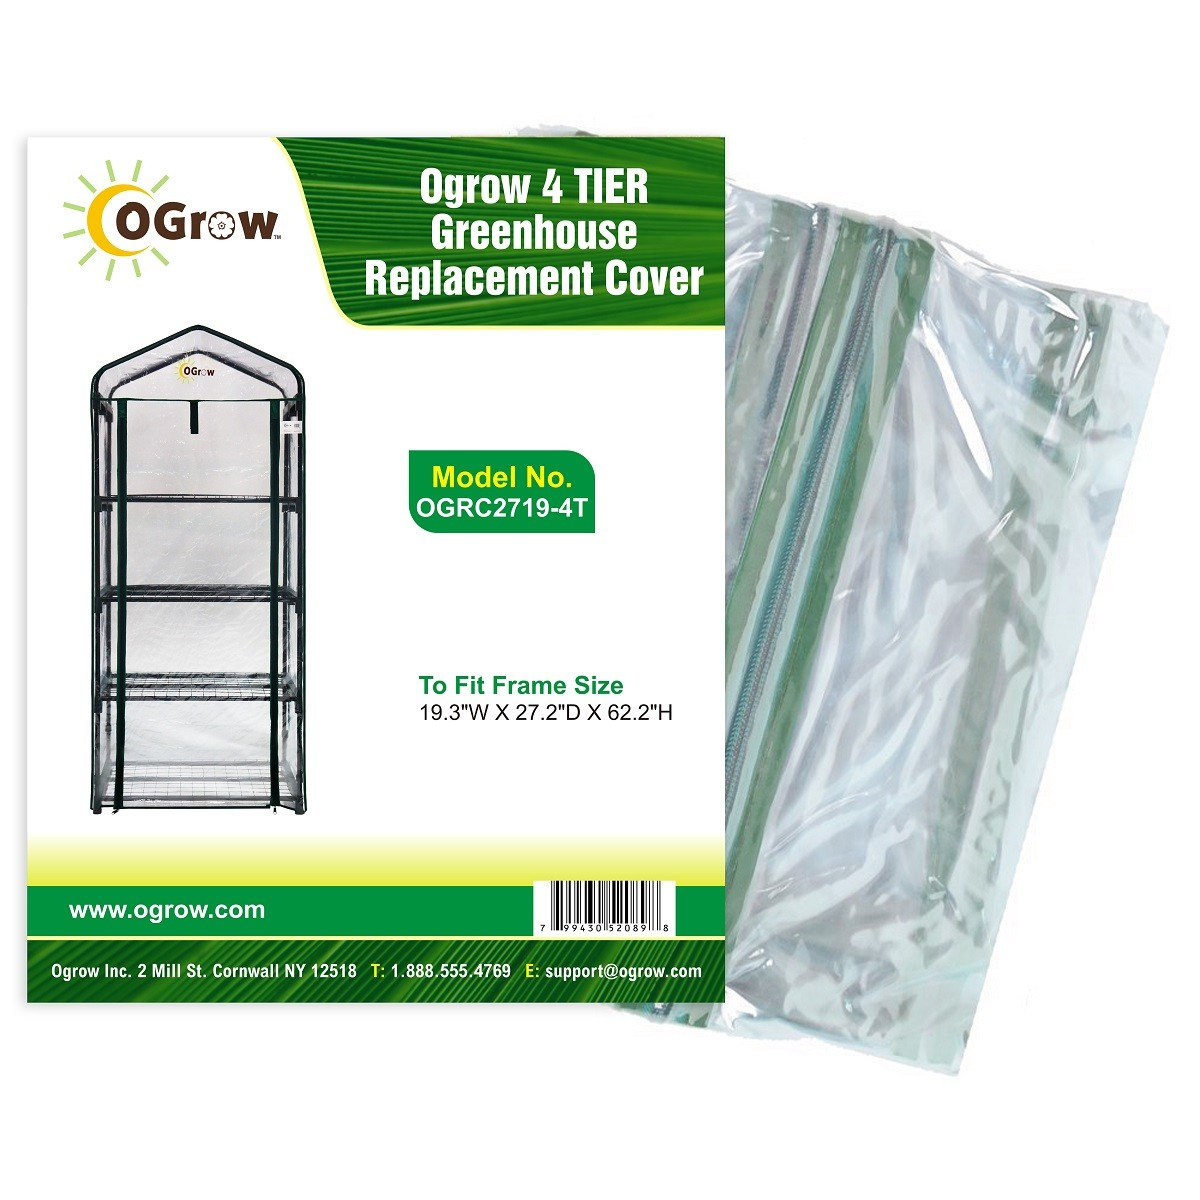 "4 Tier Mini PVC Plastic Greenhouse Replacement Cover - 27"" W x 19"" D x 62"" H - Clear"